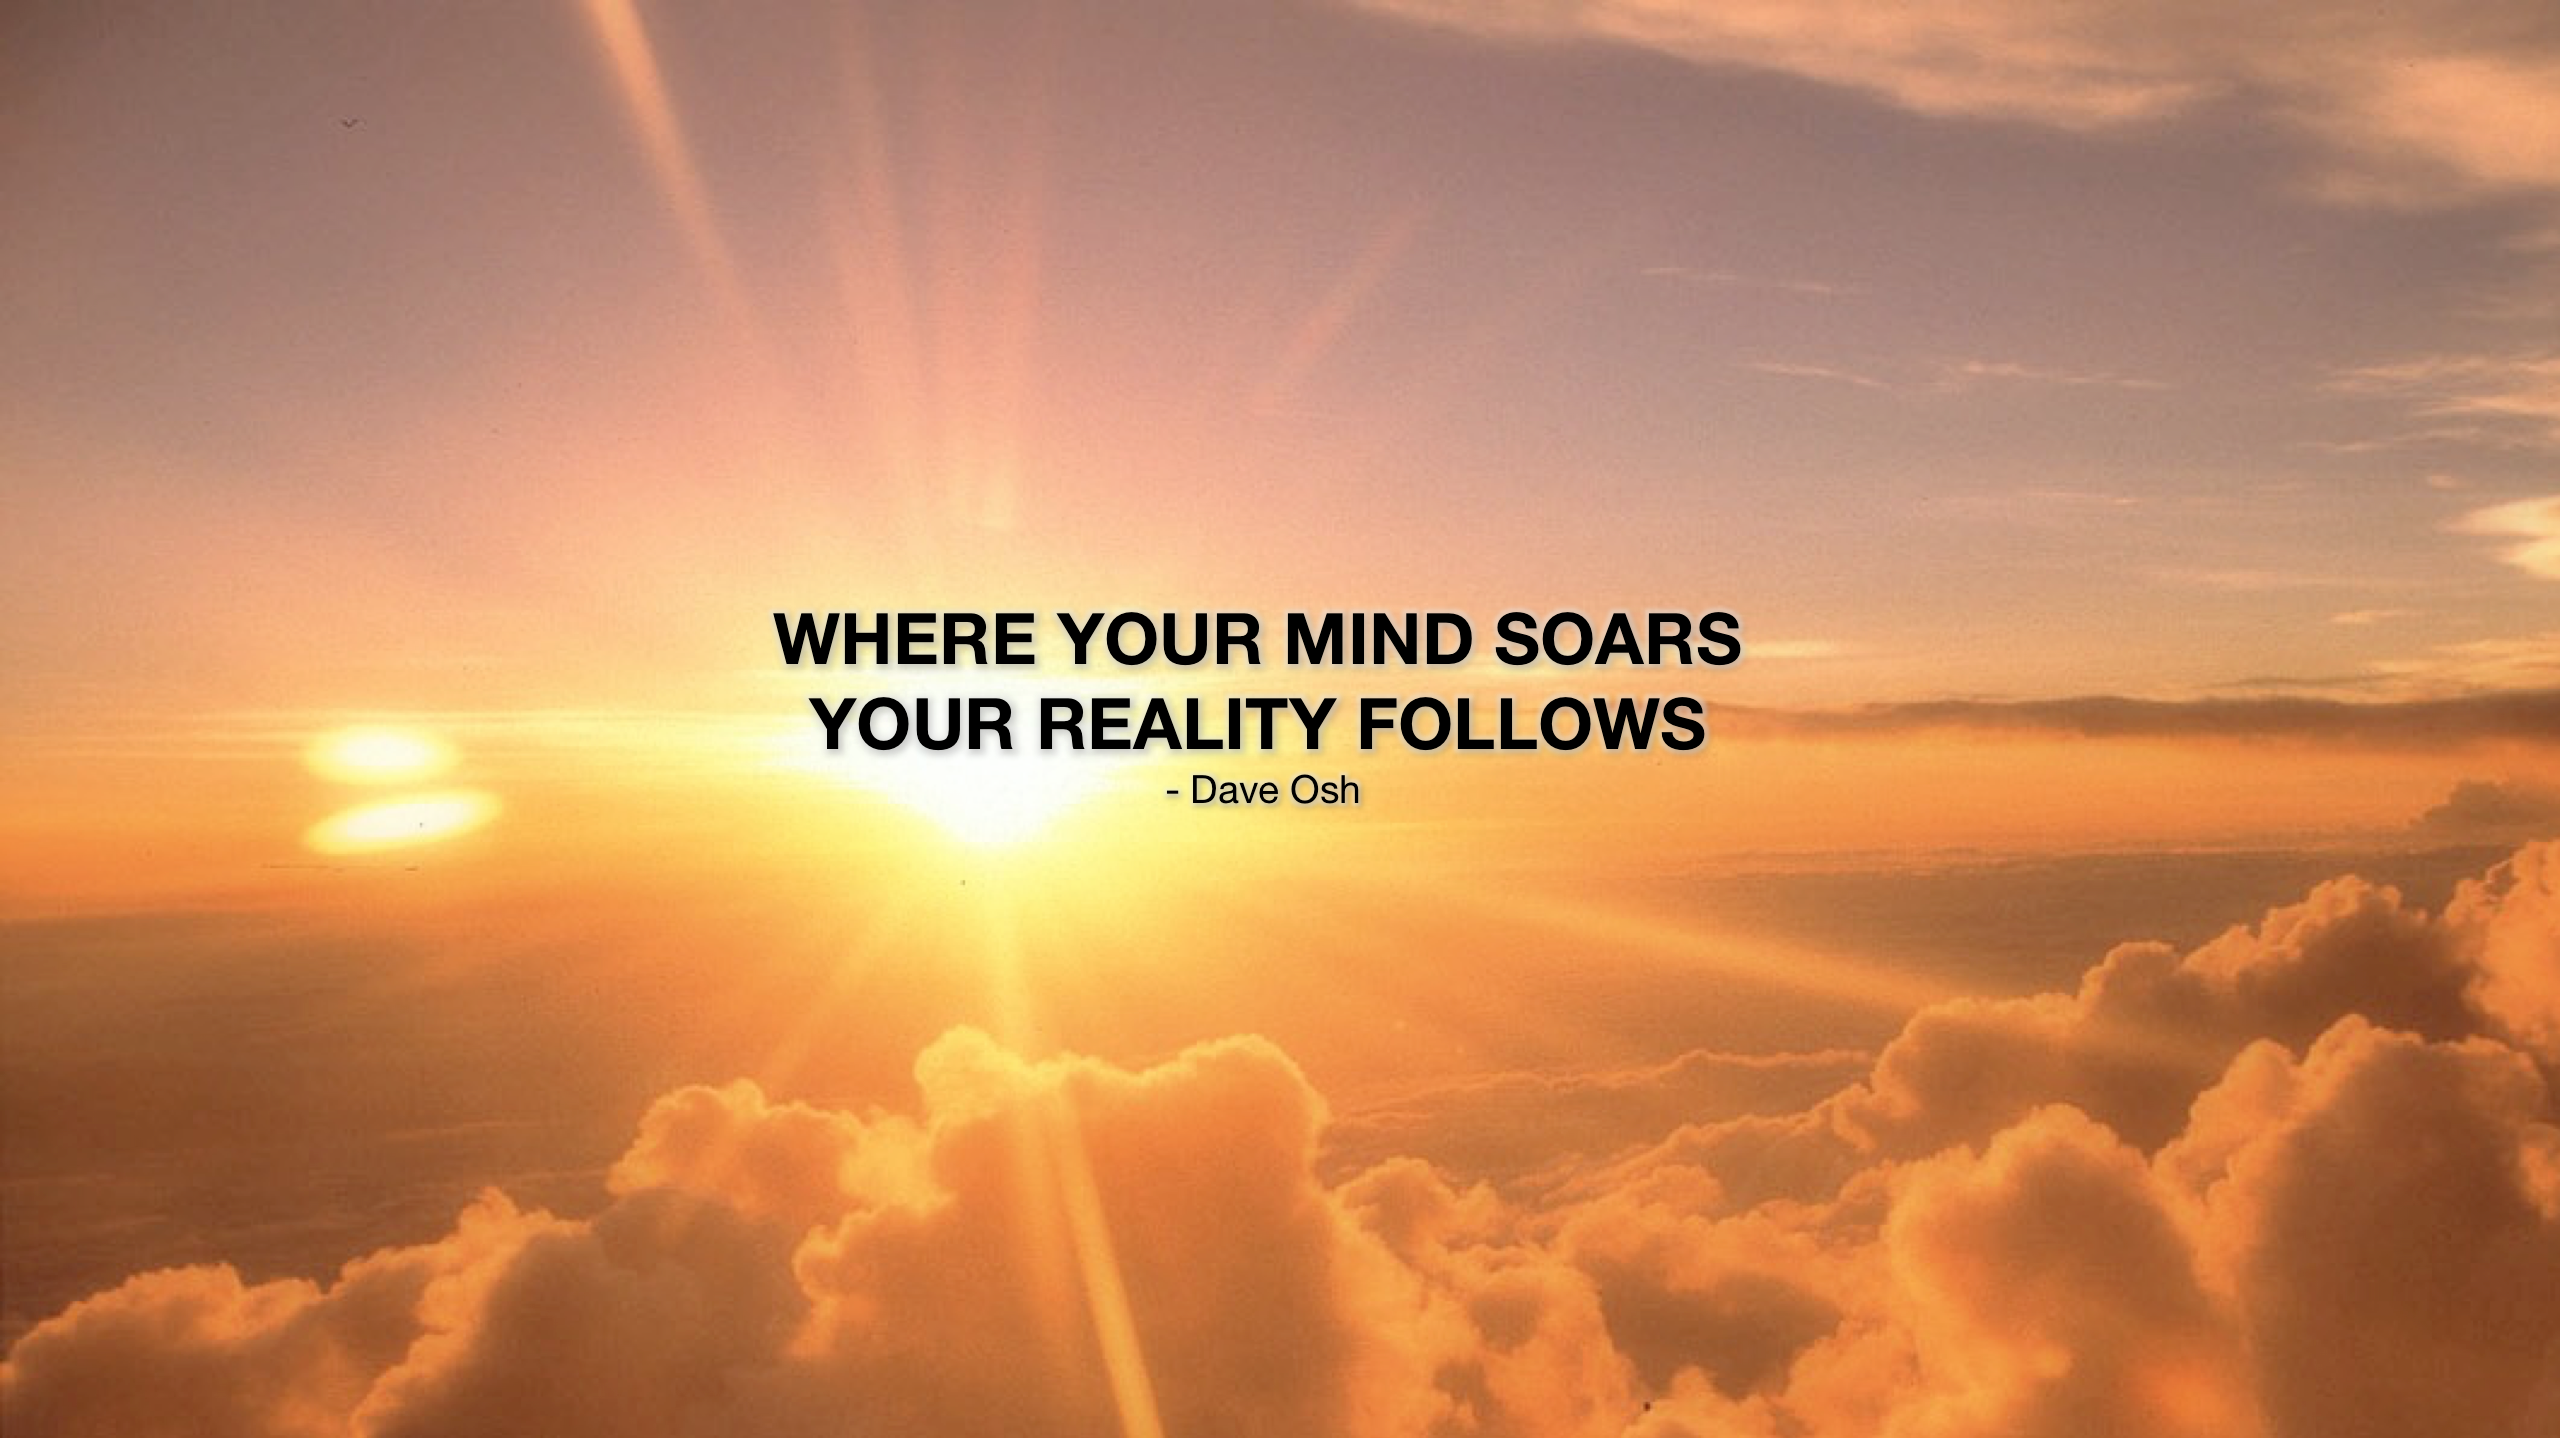 WHERE YOUR MIND SOARS YOUR REALITY FOLLOWS